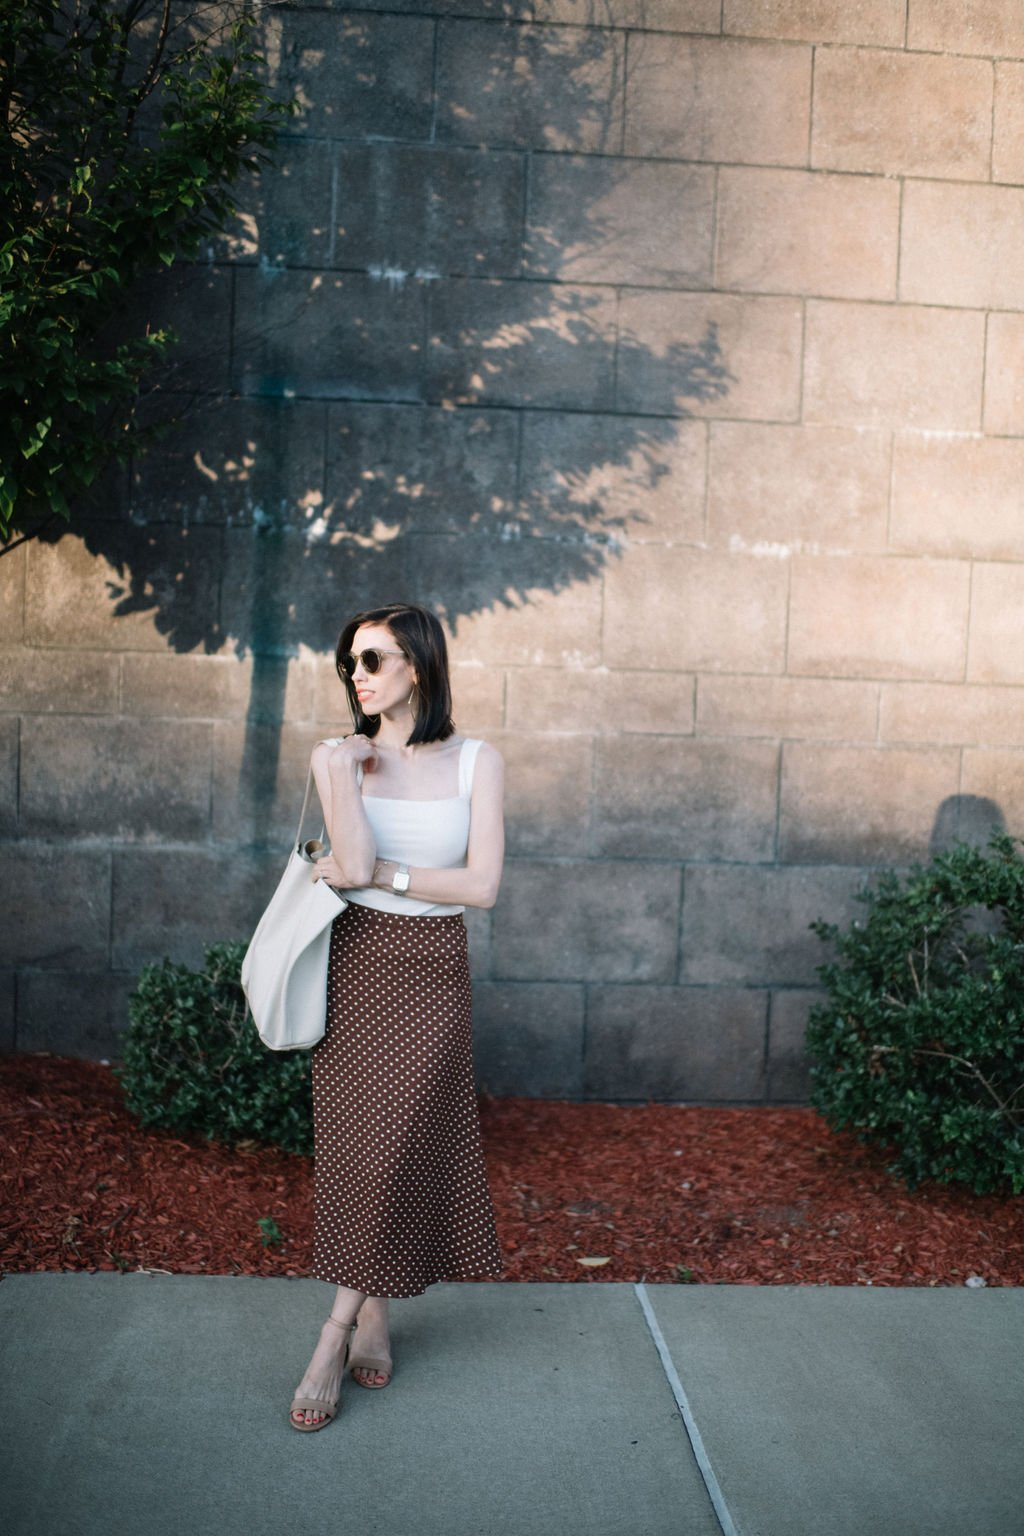 Top US lifestyle blogger, Wellesley & King, highlights sustainable fashion brand Reformation: sustainable fashion, Pittsburgh fashion blogger, Pittsburgh, Reformation, Jcrew, midi skirt, brunette, spring style, ethical fashion, petite fashion, petite style